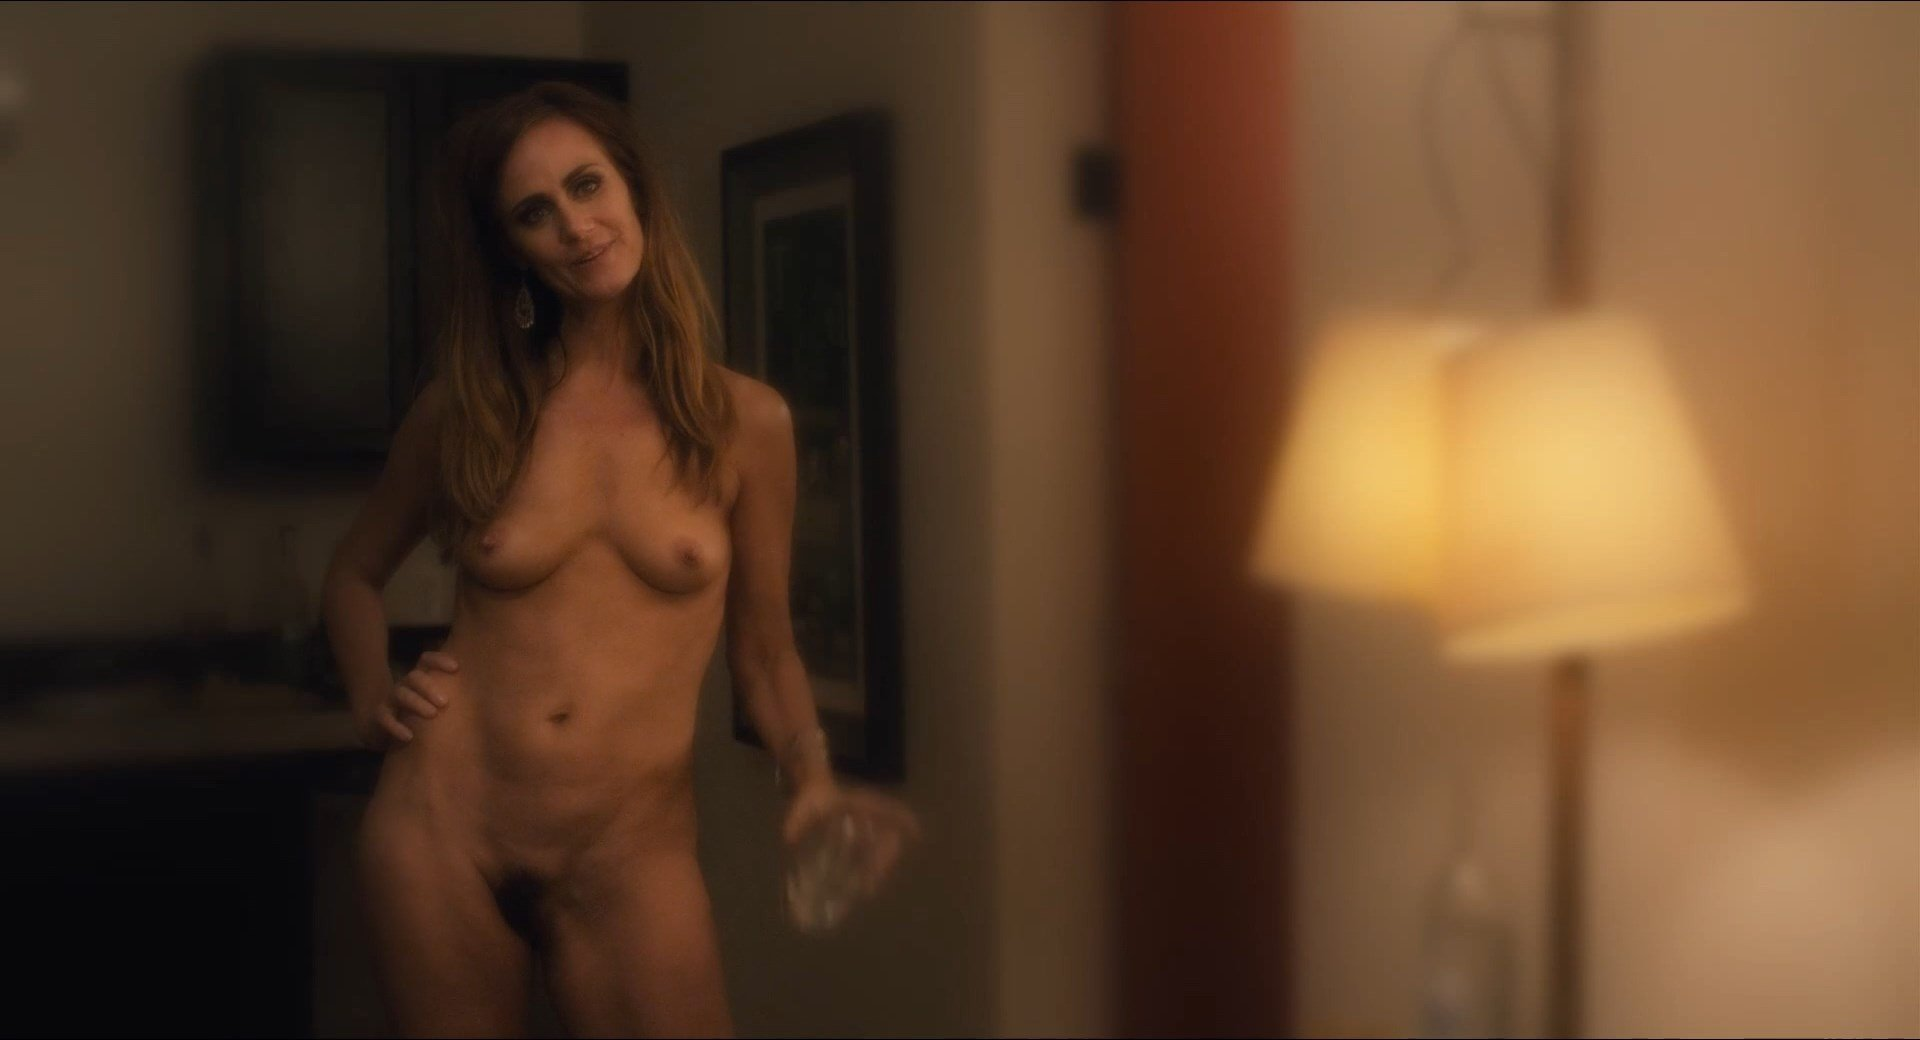 Juno temple nude boobs and bush in killer joe scandalplanet